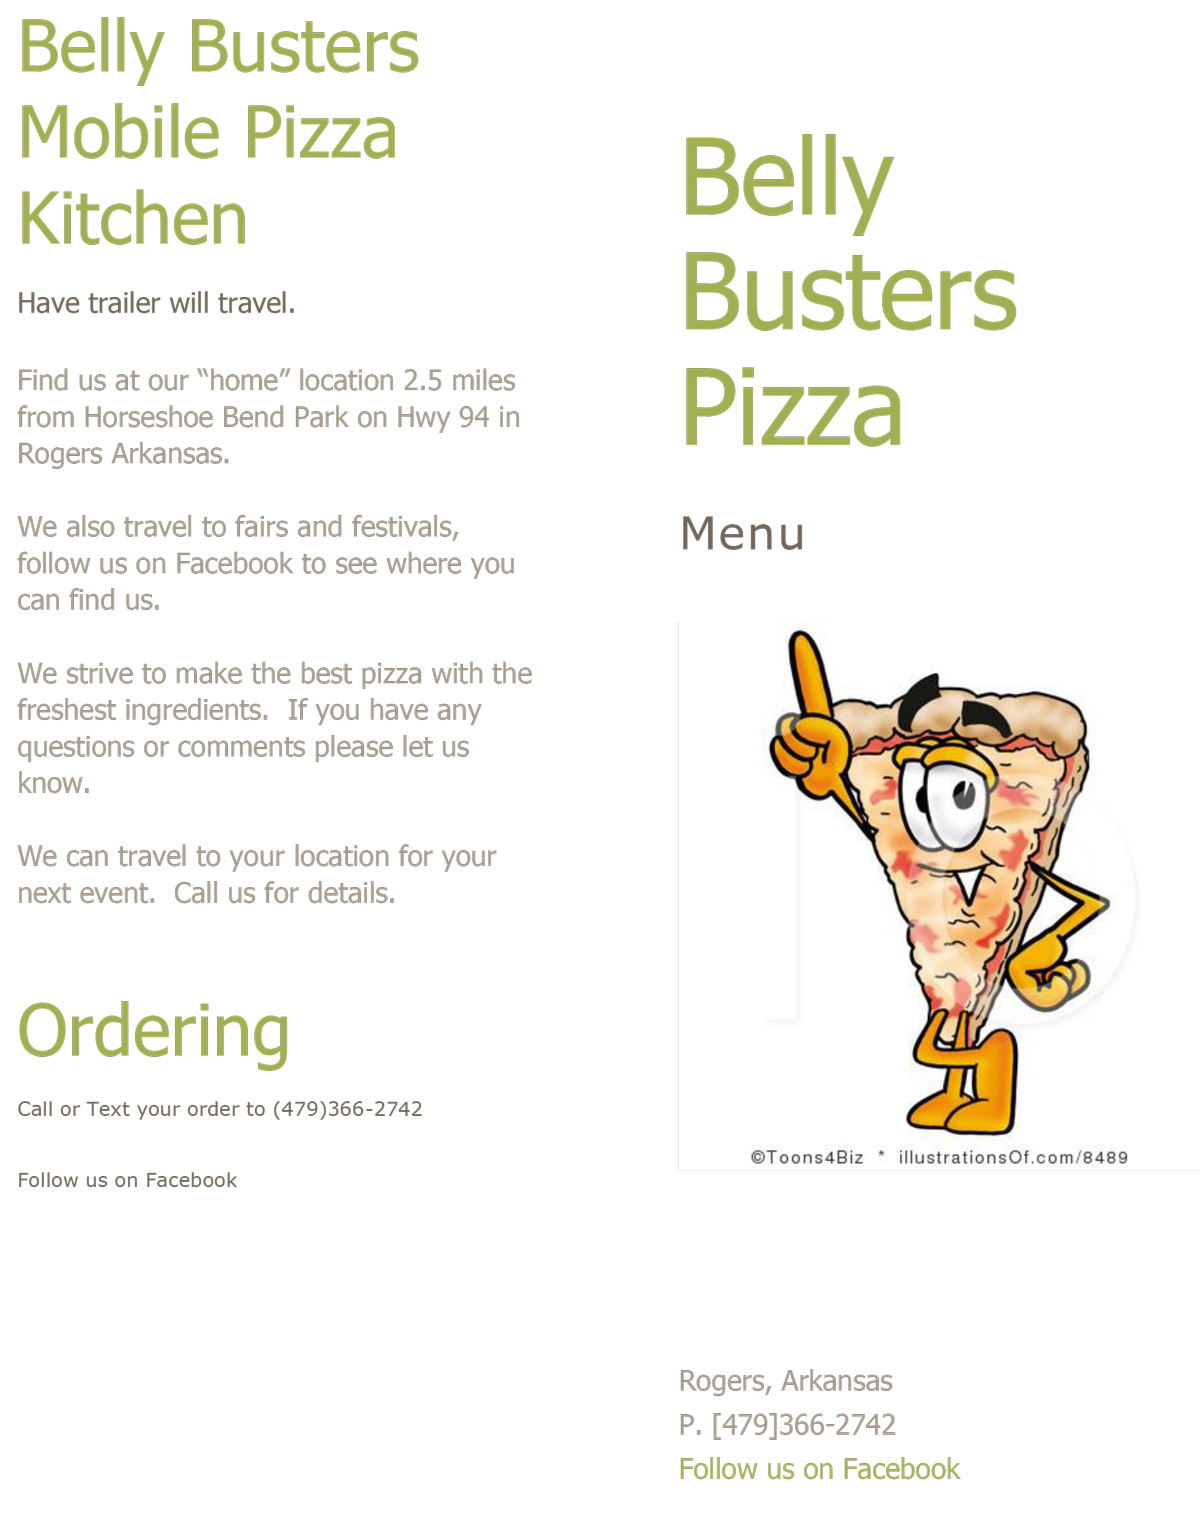 Belly Busters Mobile Pizza Kitchen Menu